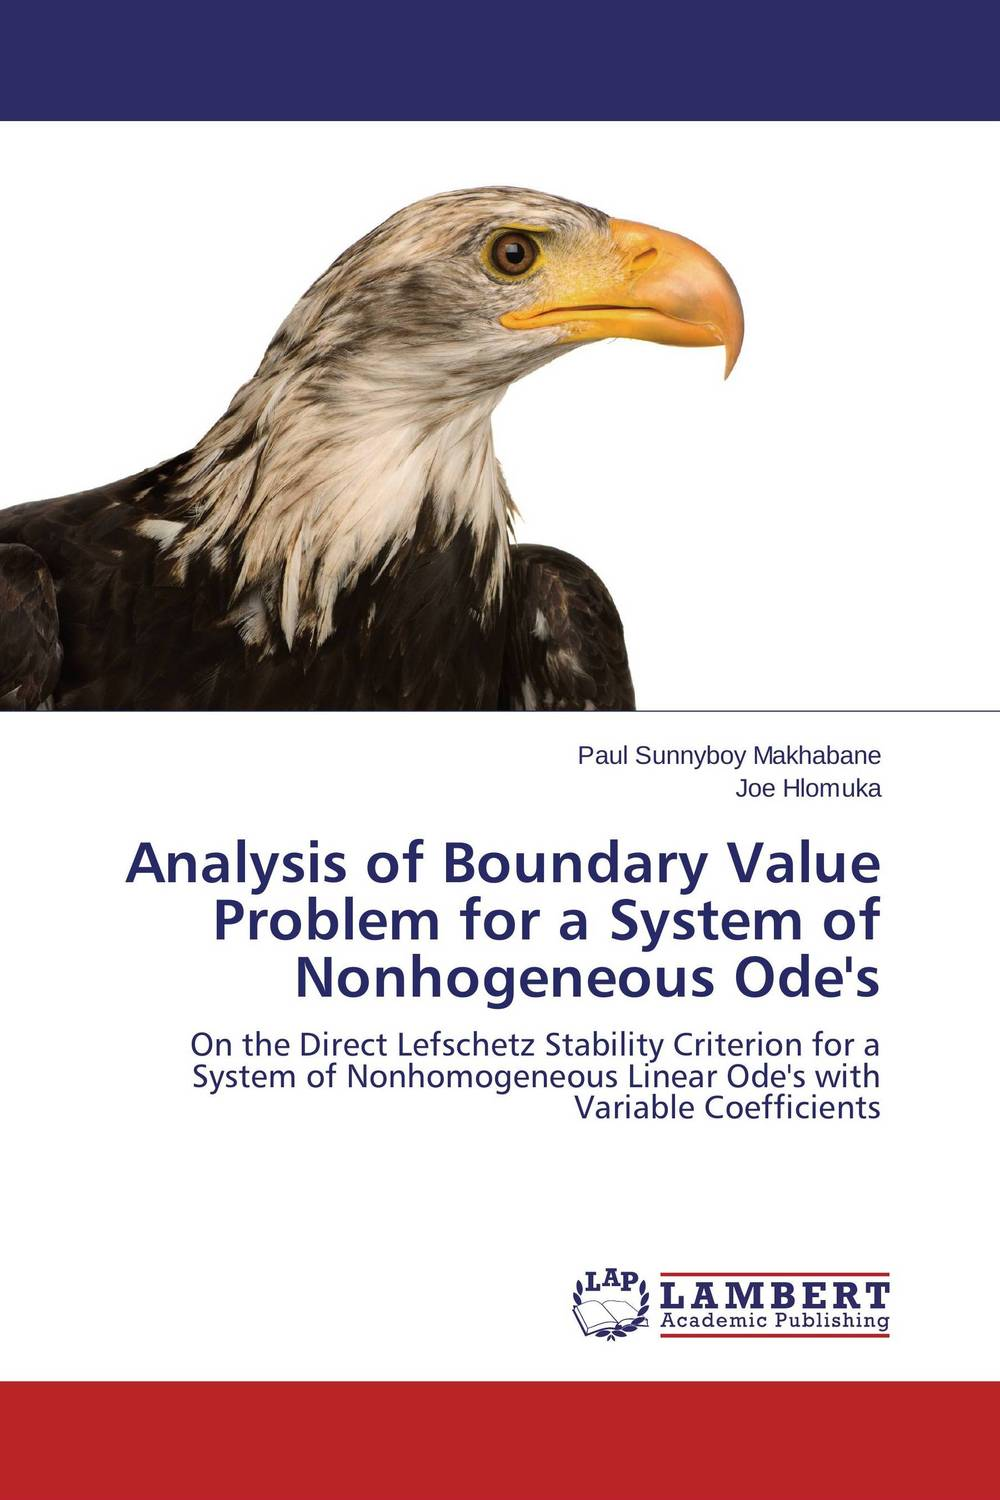 Analysis of Boundary Value Problem for a System of Nonhogeneous Ode's honey value chain analysis